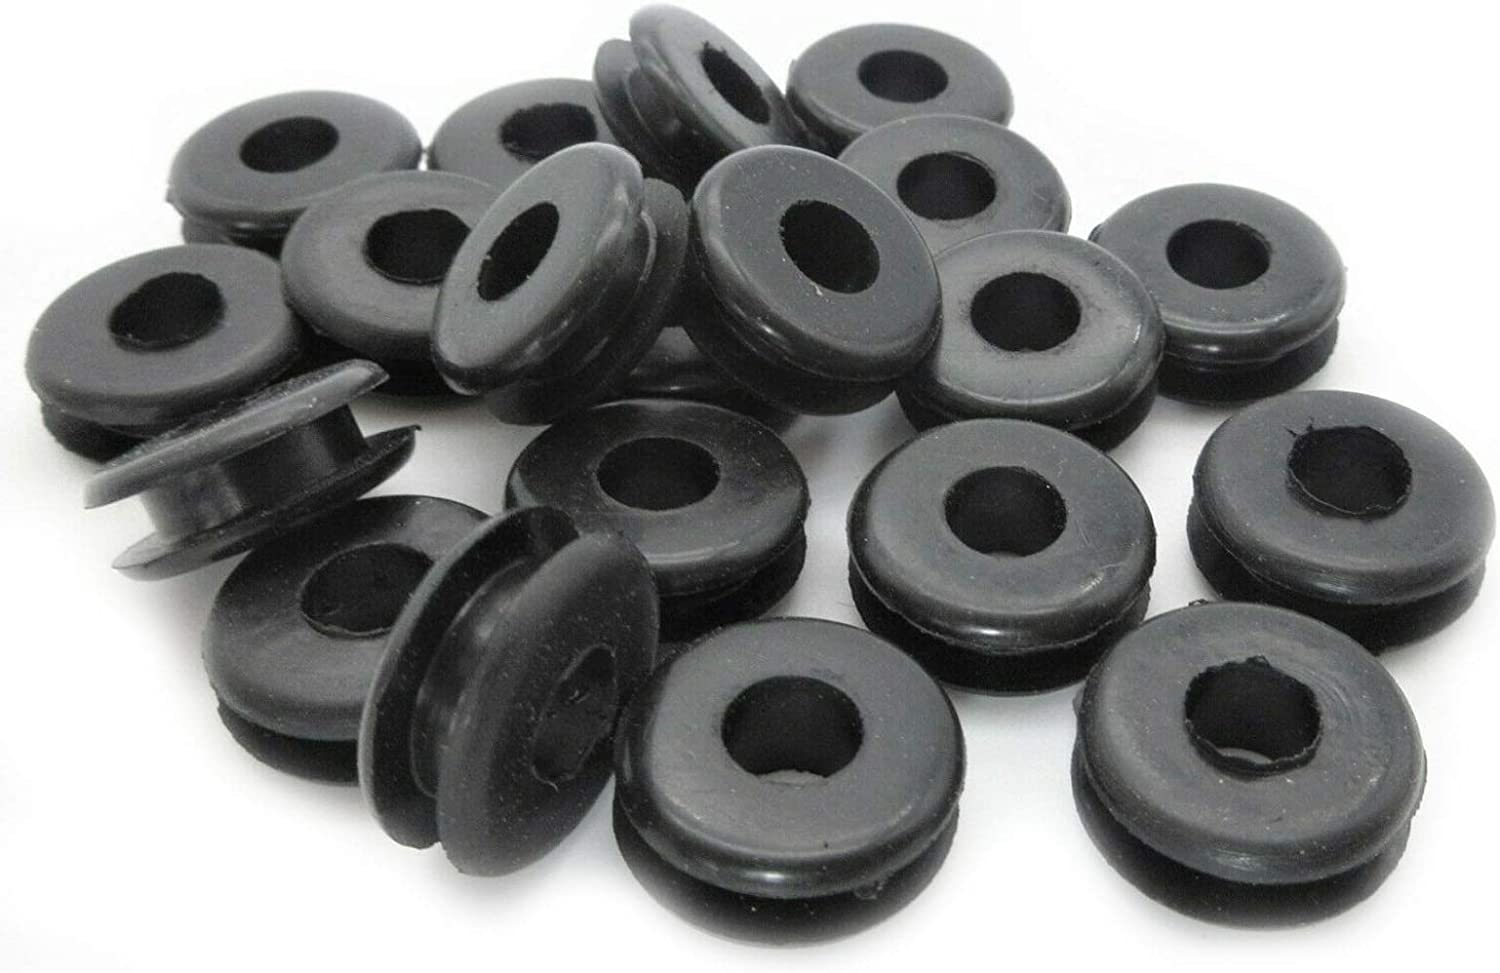 Dallas Mall OFFicial store Rubber Grommets for 5 8